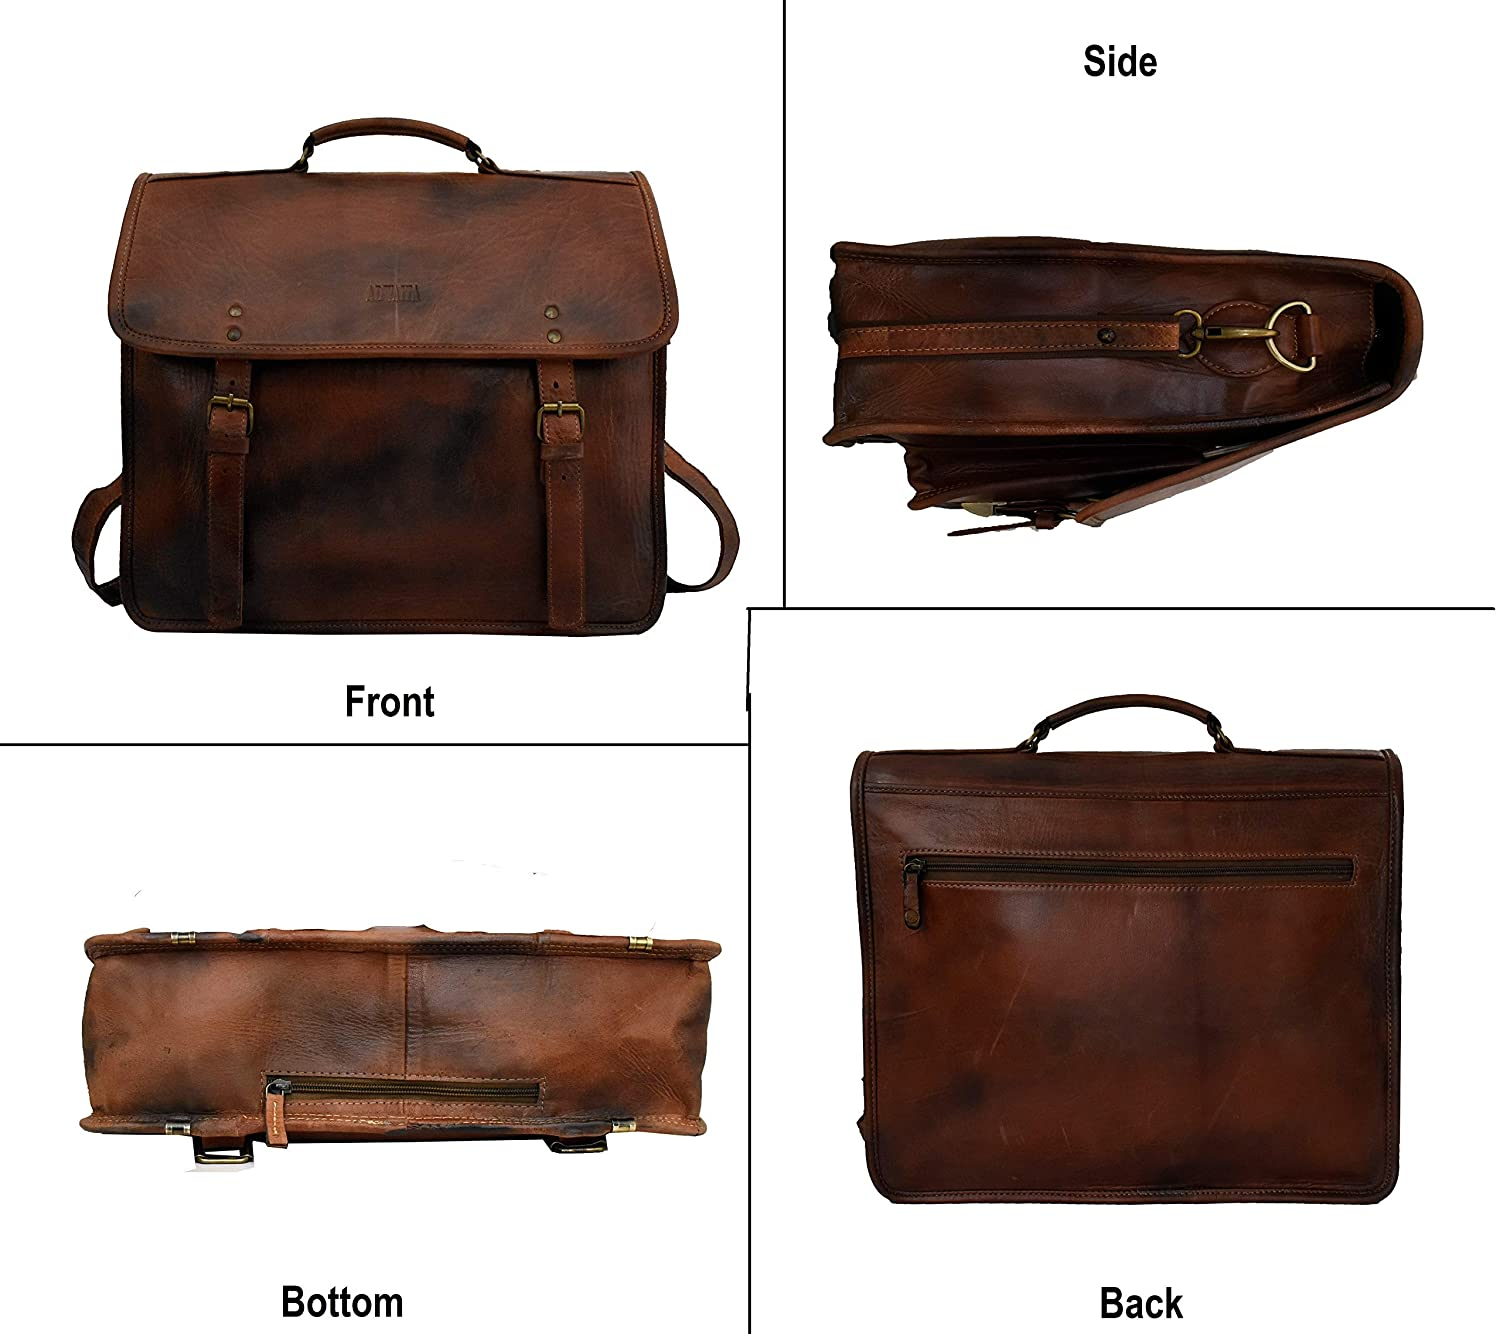 Adwaita 18 Inch Handmade Custom and personalize Antique Classic Leather Messenger Satchel Laptop Leather Bag Leather Messenger Bag with Rain Cover Version-1.0